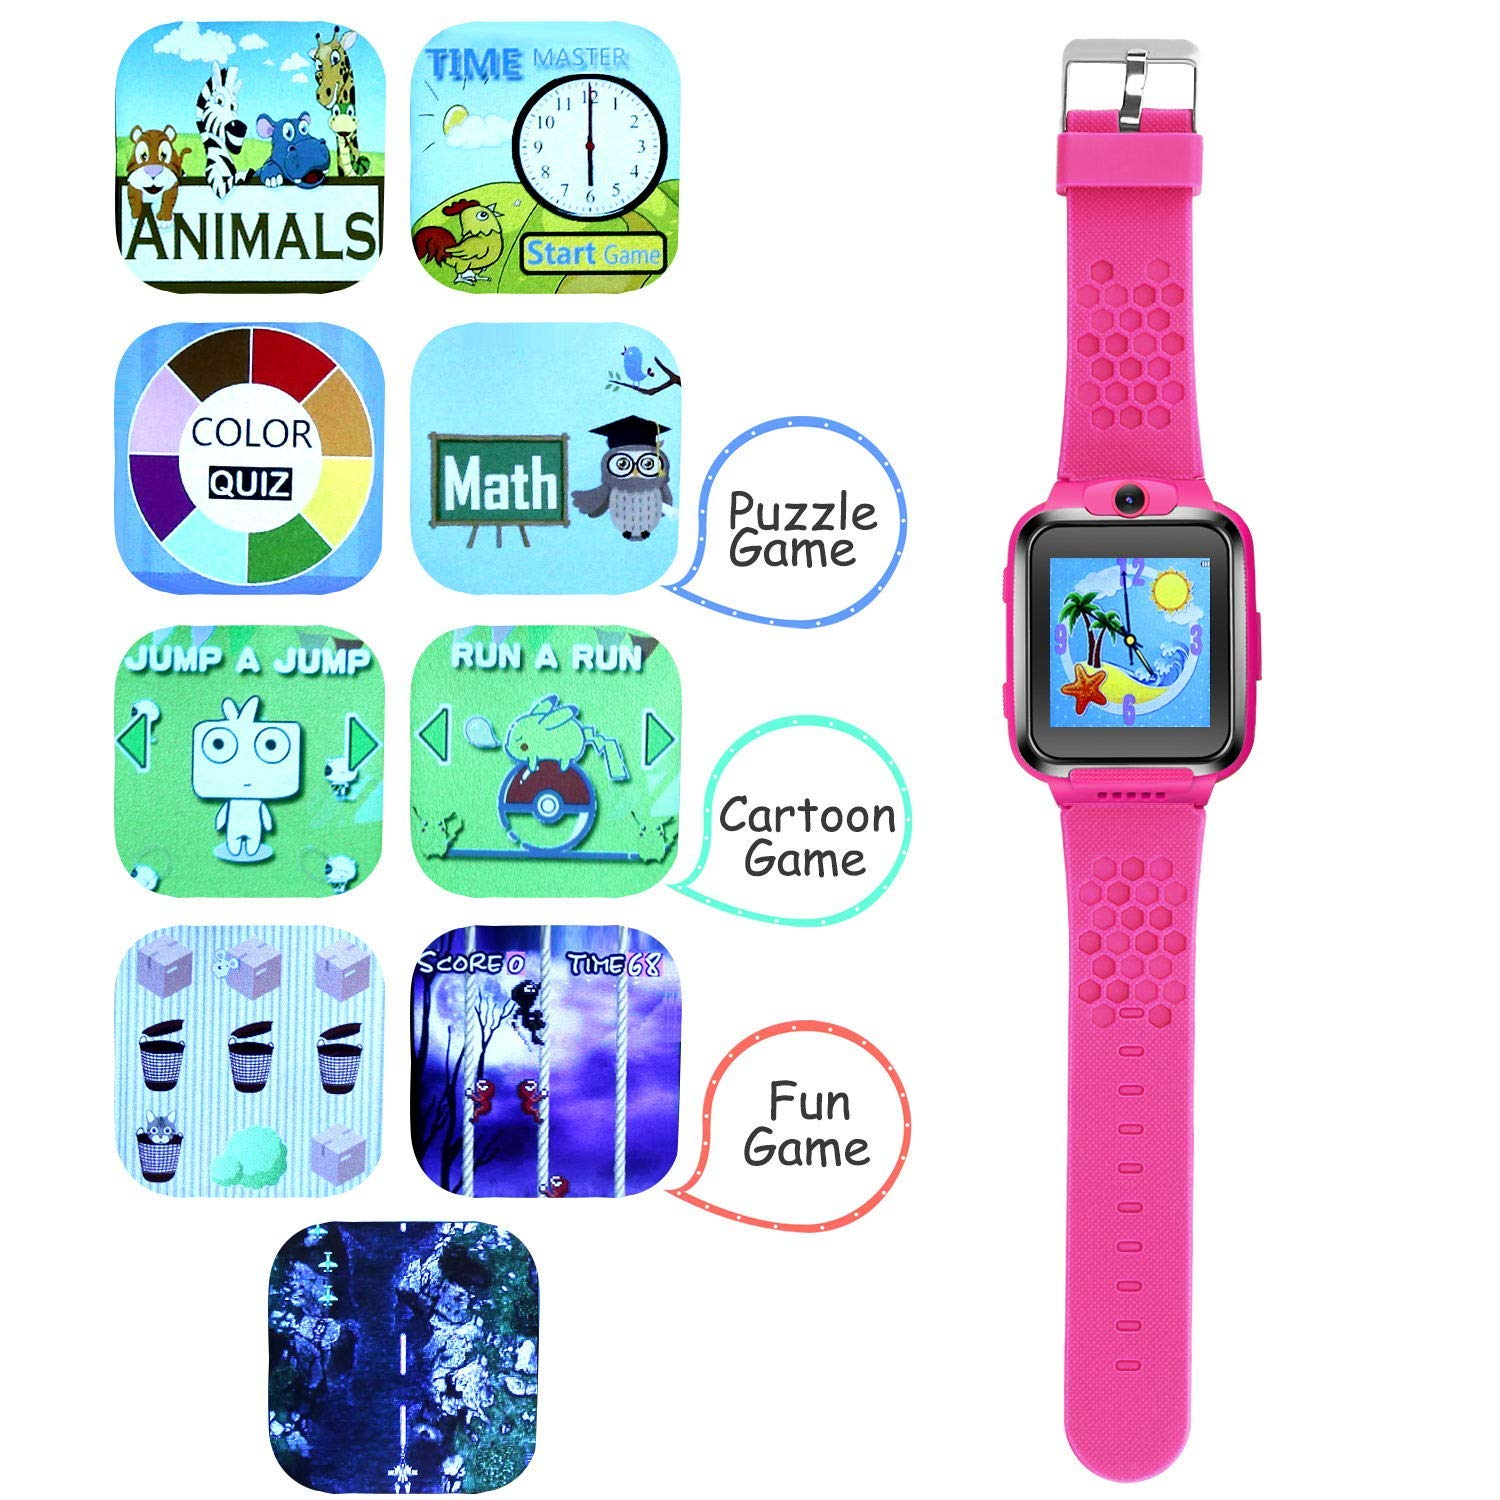 ZOPPRI Kids Game smartwatch Touch Screen Kinds of Games Kids Watch Theme Calendar Stopwatch Alarm Clock Photo Timer Multi-Function Watch Toy Gift for 3-12 Years Old boy Girl Birthday Gift (Pink) by ZOPPRI (Image #4)